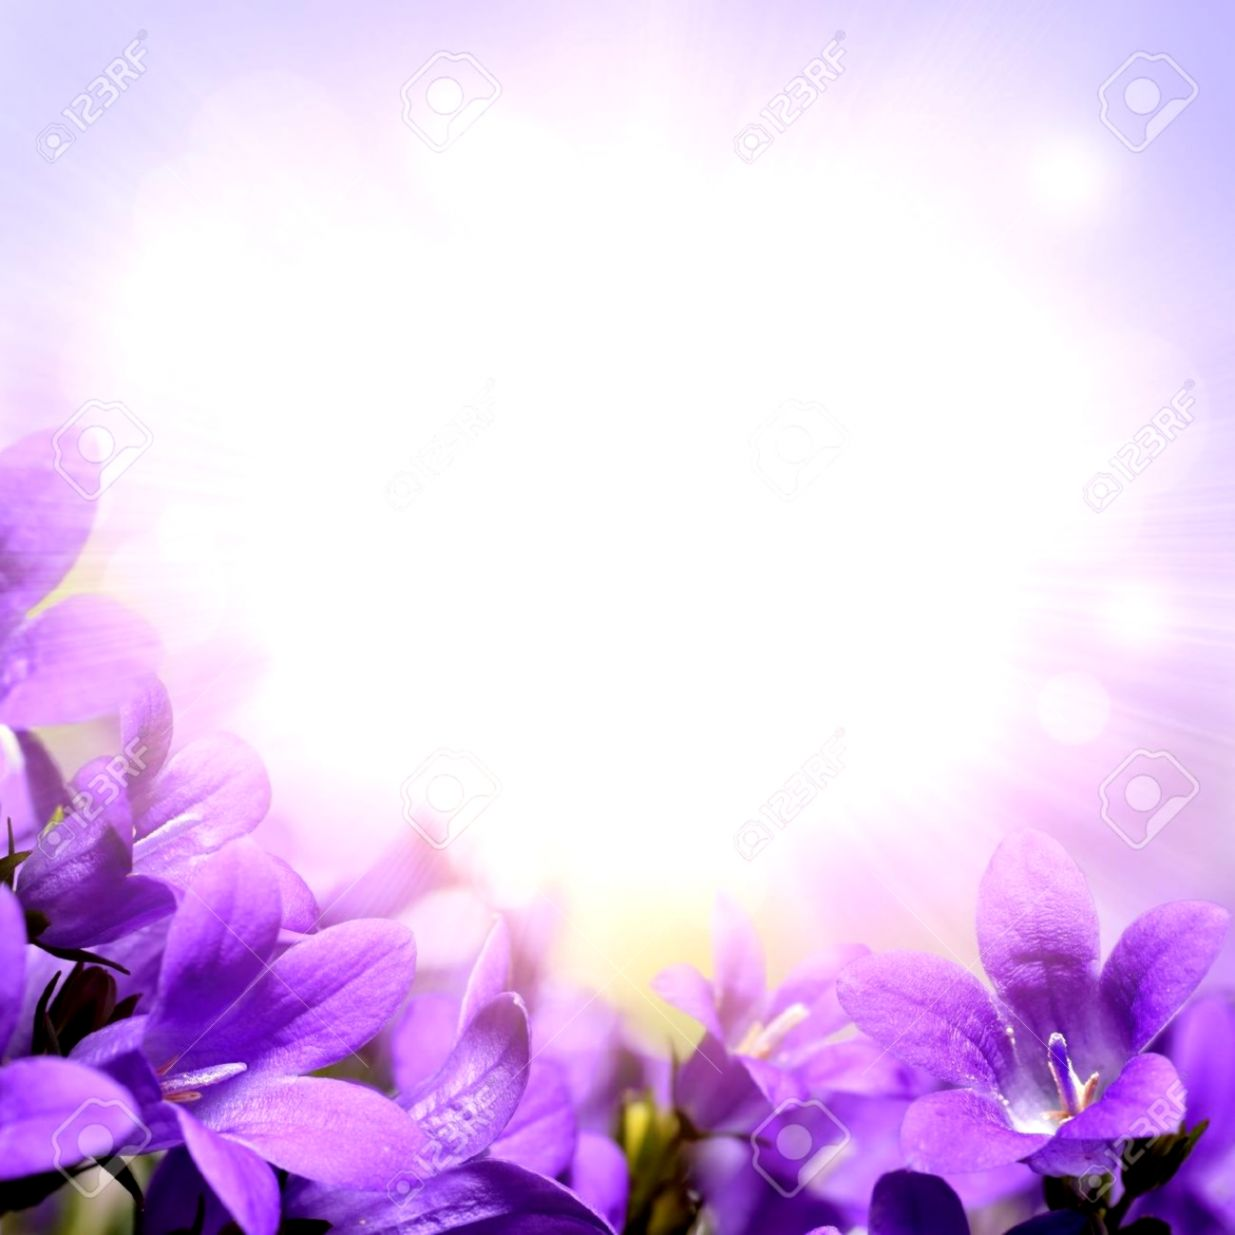 Flower backgrounds purple image wallpaper collections view original size purple flower background royalty free stock image image 12209816 mightylinksfo